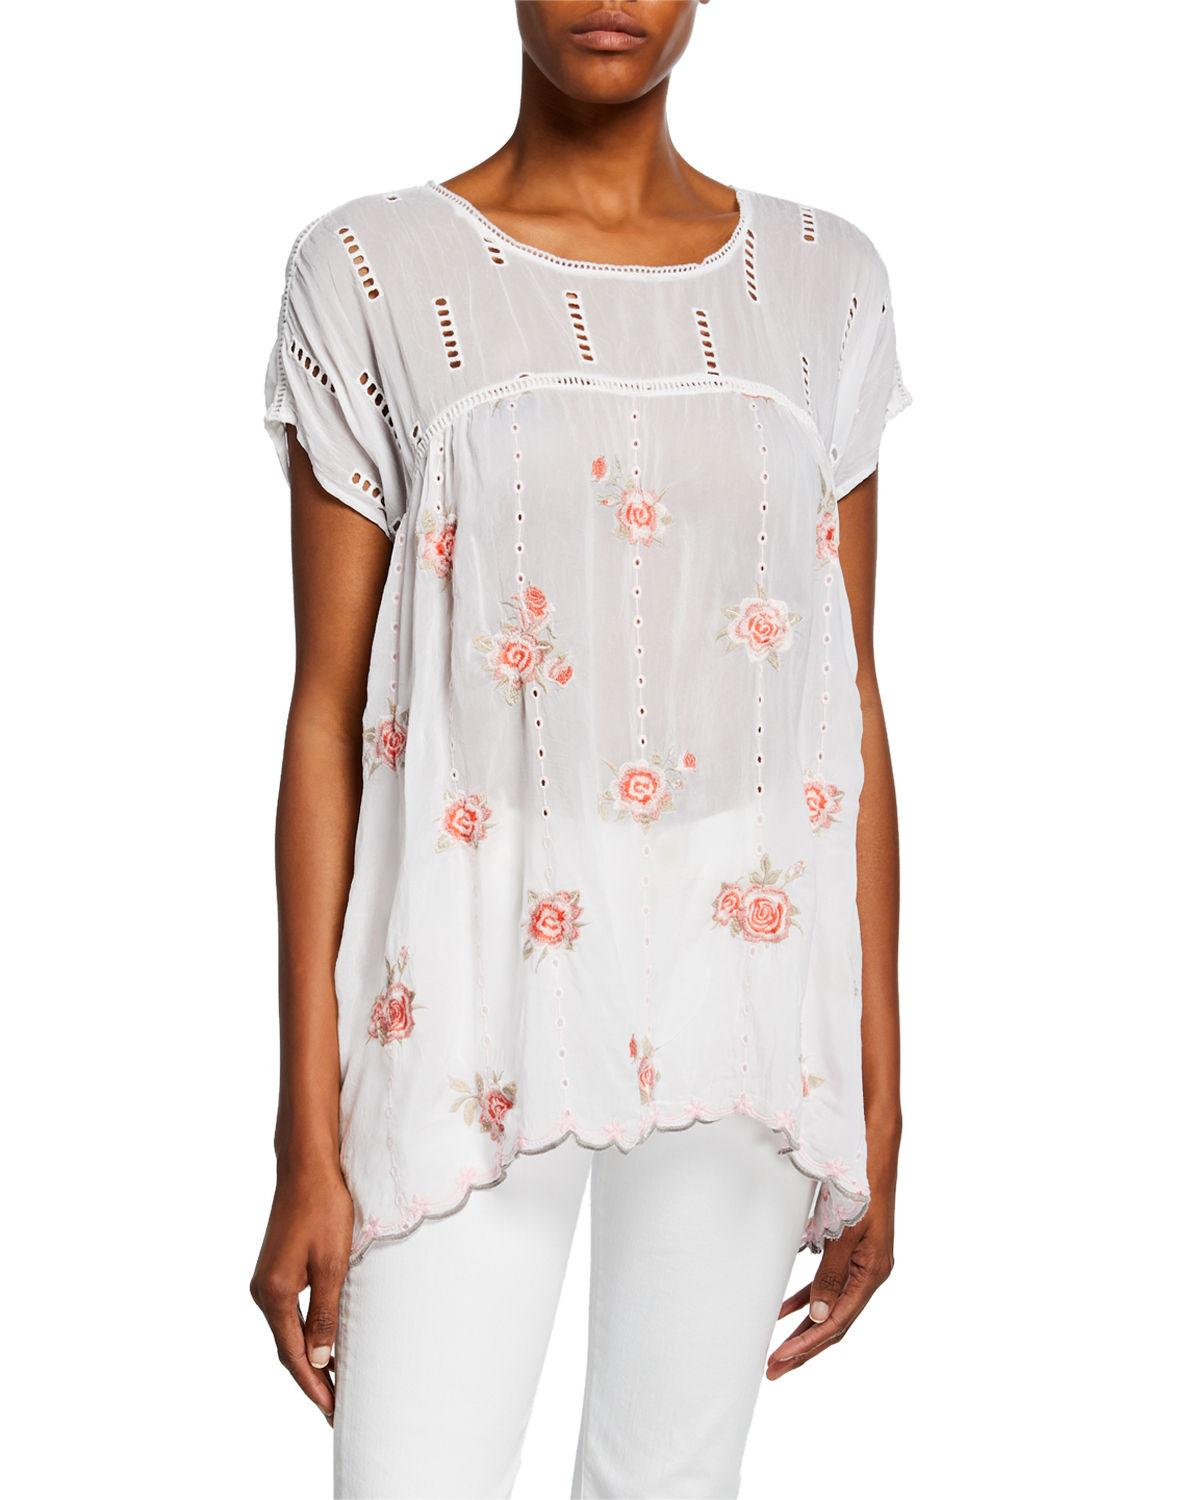 b3e8a48a7572b Lyst - Johnny Was Rose Floral Embroidered Dolman Top W  Eyelet ...